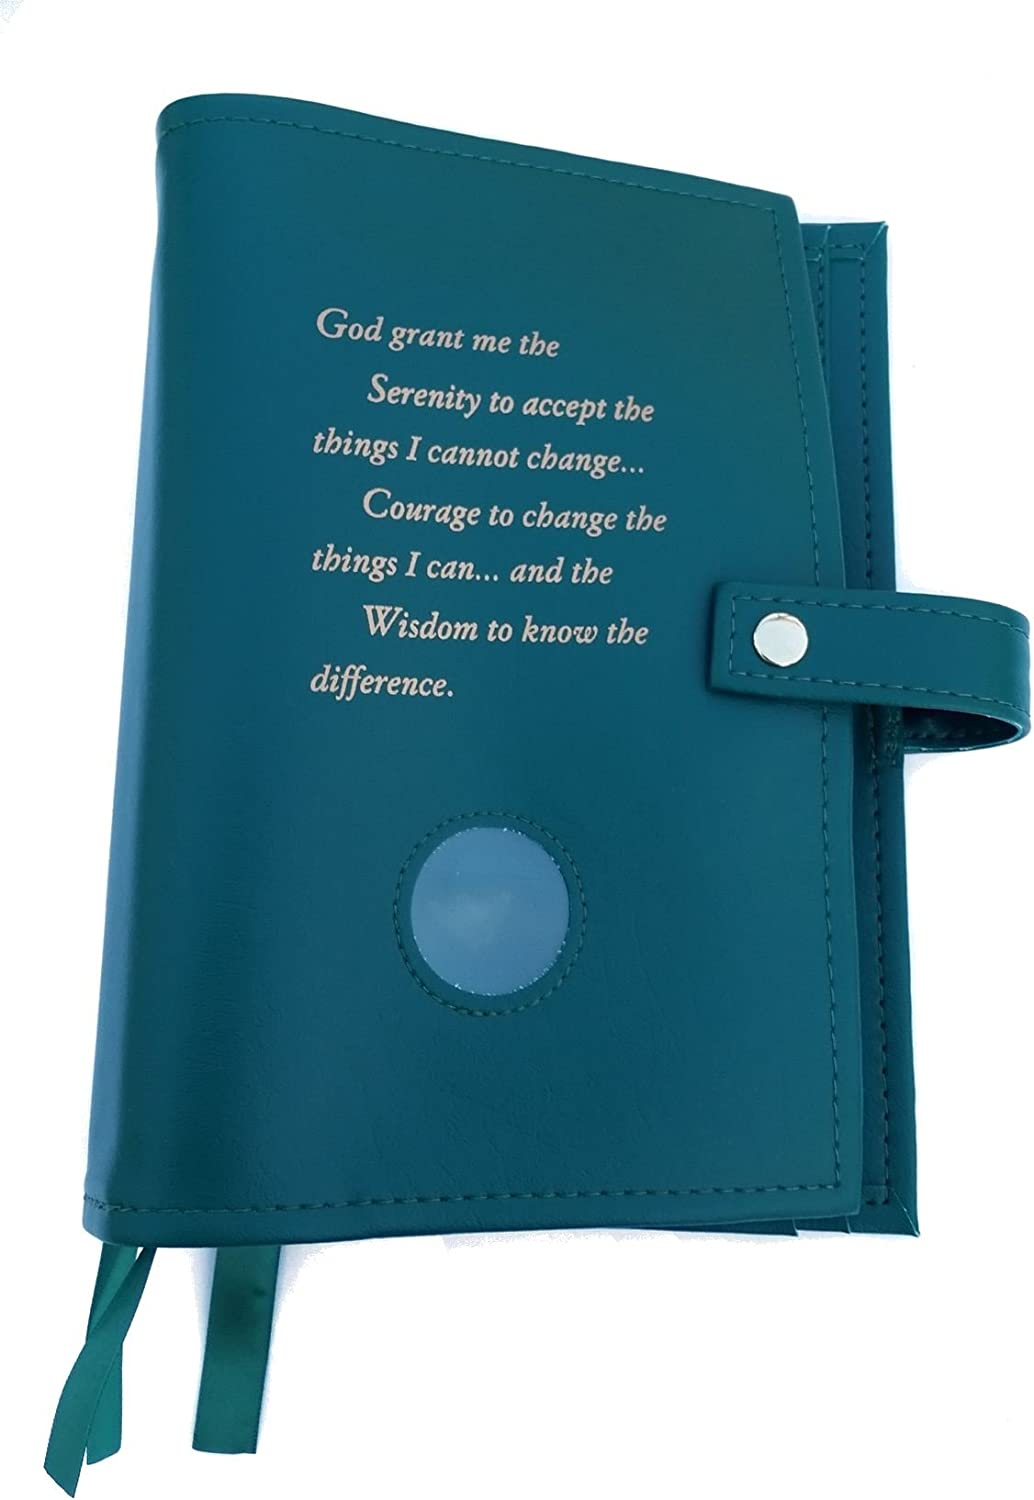 6th Ed It Works How and Why and Living Clean with Serenity Prayer and Medallion Holder. Green Deluxe Triple NA Book Cover for The Basic Text